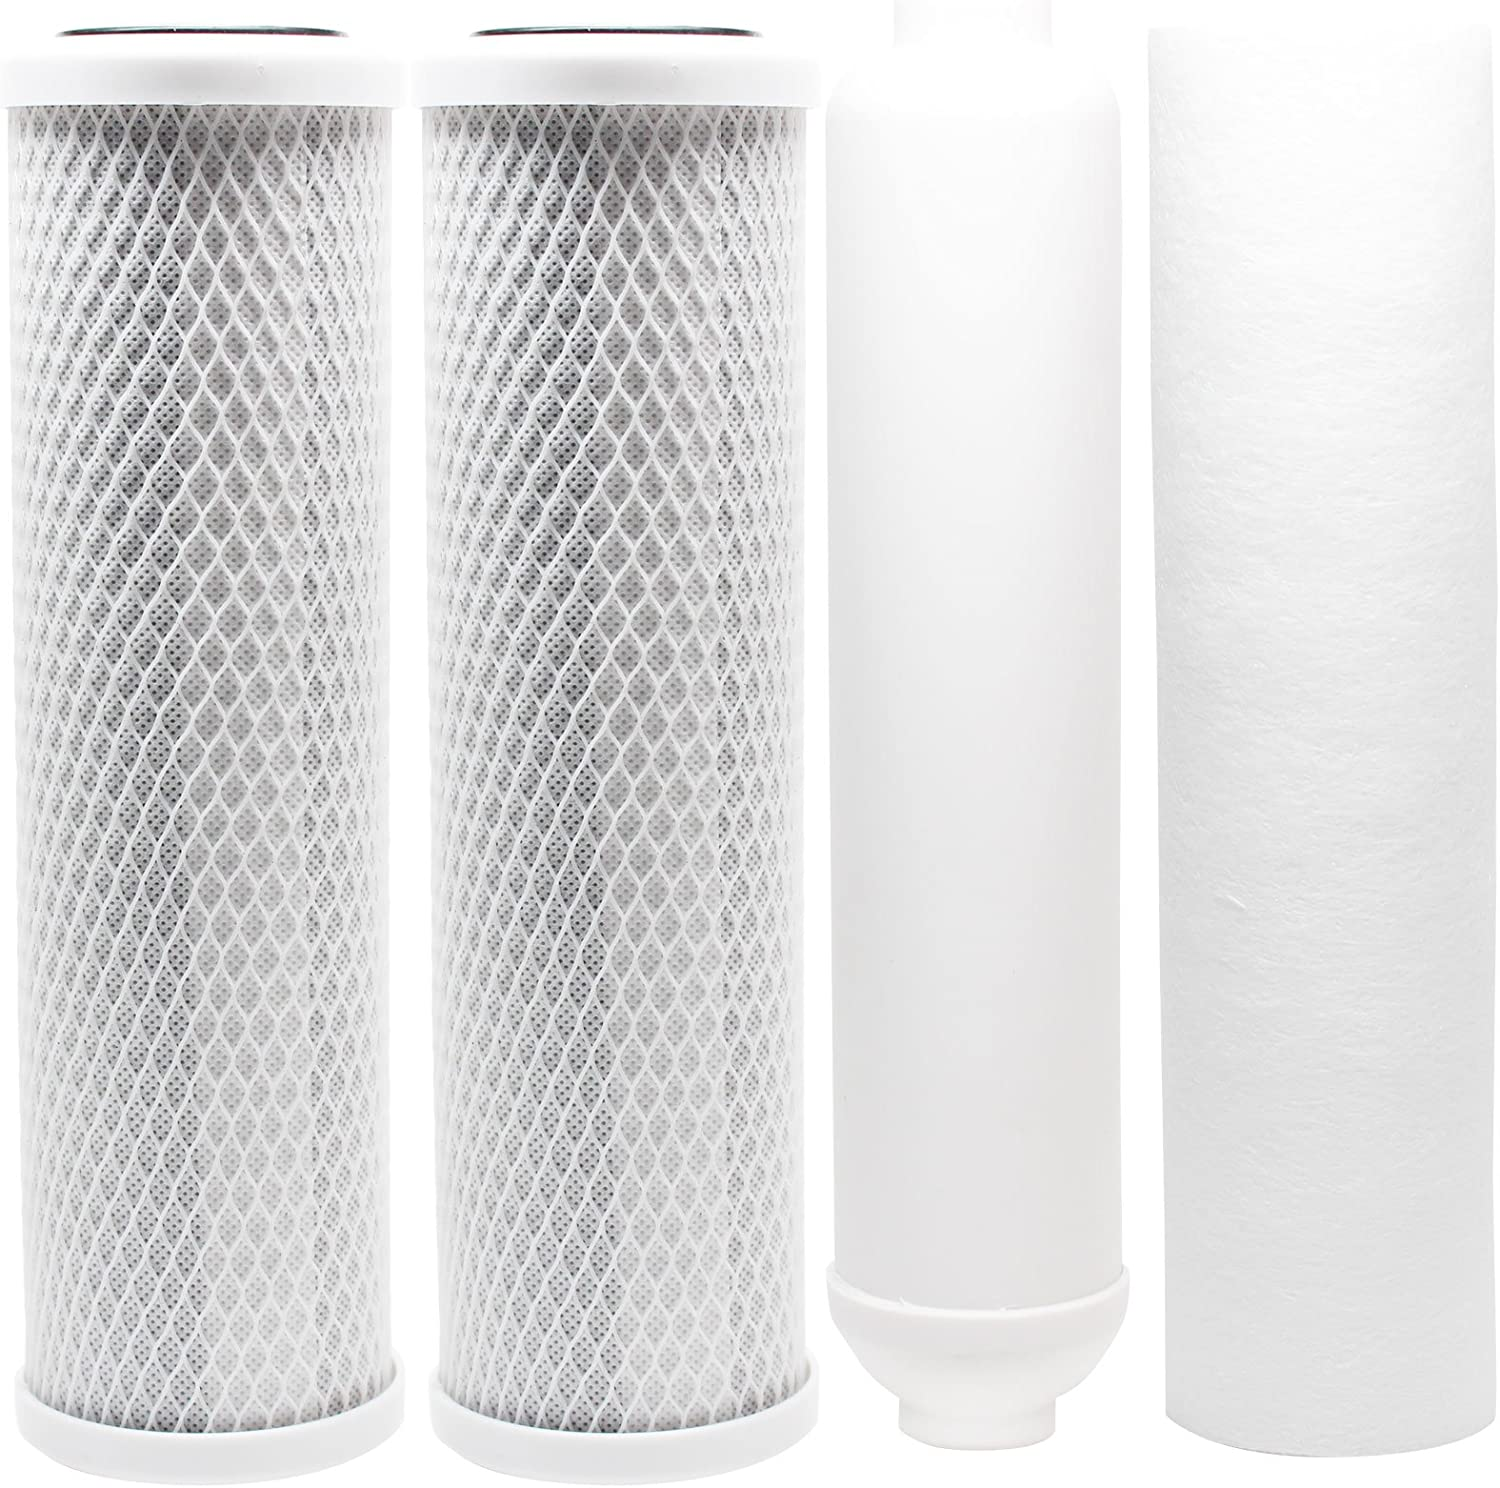 Amazon Com Replacement Filter Kit Compatible With Apec Roes 50 Ro System Includes Carbon Block Filters Pp Sediment Filter Inline Filter Cartridge Denali Pure Brand Home Improvement